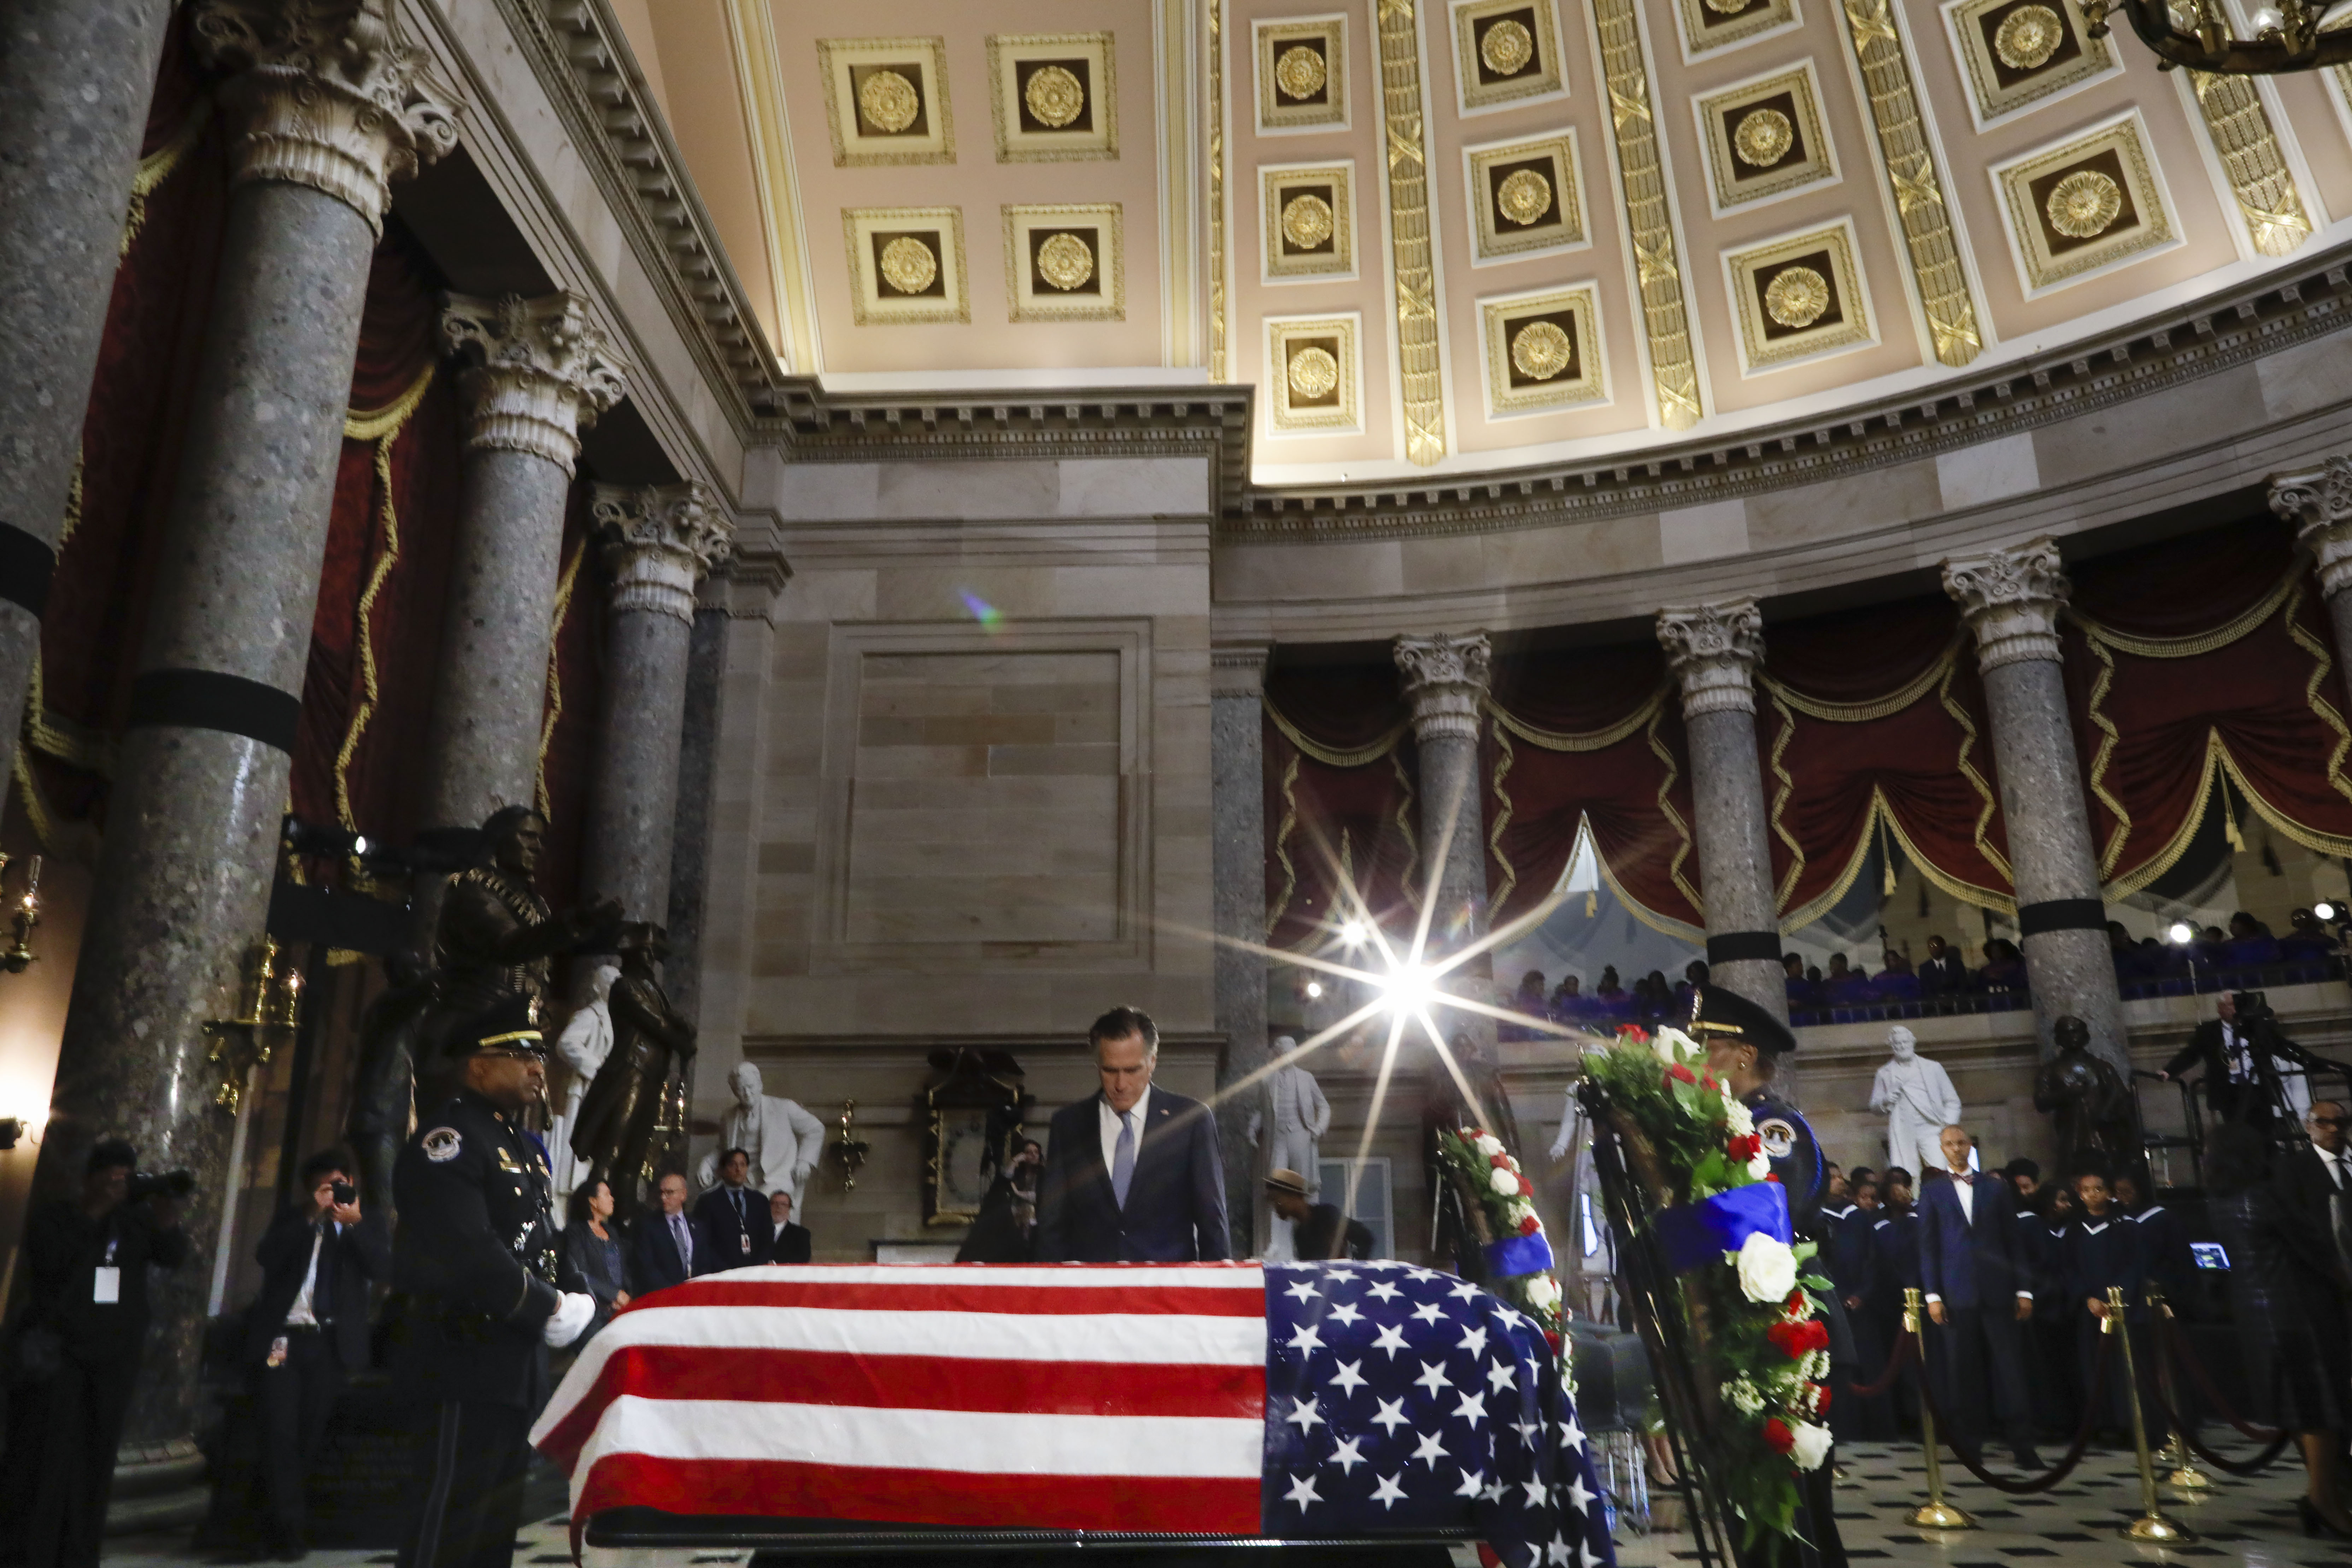 "WASHINGTON, DC - OCTOBER 24: U.S. Sen. Mitt Romney (R-UT) stops to pay his respects over the flag-draped casket of U.S. Rep. Elijah Cummings (D-MD) in National Statuary Hall at the U.S. Capitol during a memorial service October 24, 2019 in Washington, DC. Rep. Cummings passed away on October 17, 2019 at the age of 68 from ""complications concerning longstanding health challenges."" (Photo by Pablo Martinez Monsivais-Pool/Getty Images)"